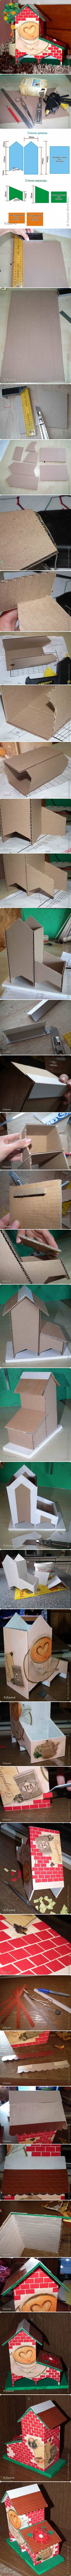 How To Make Cute Cardboard Tea Bag Dispenser step by step DIY tutorial instructions